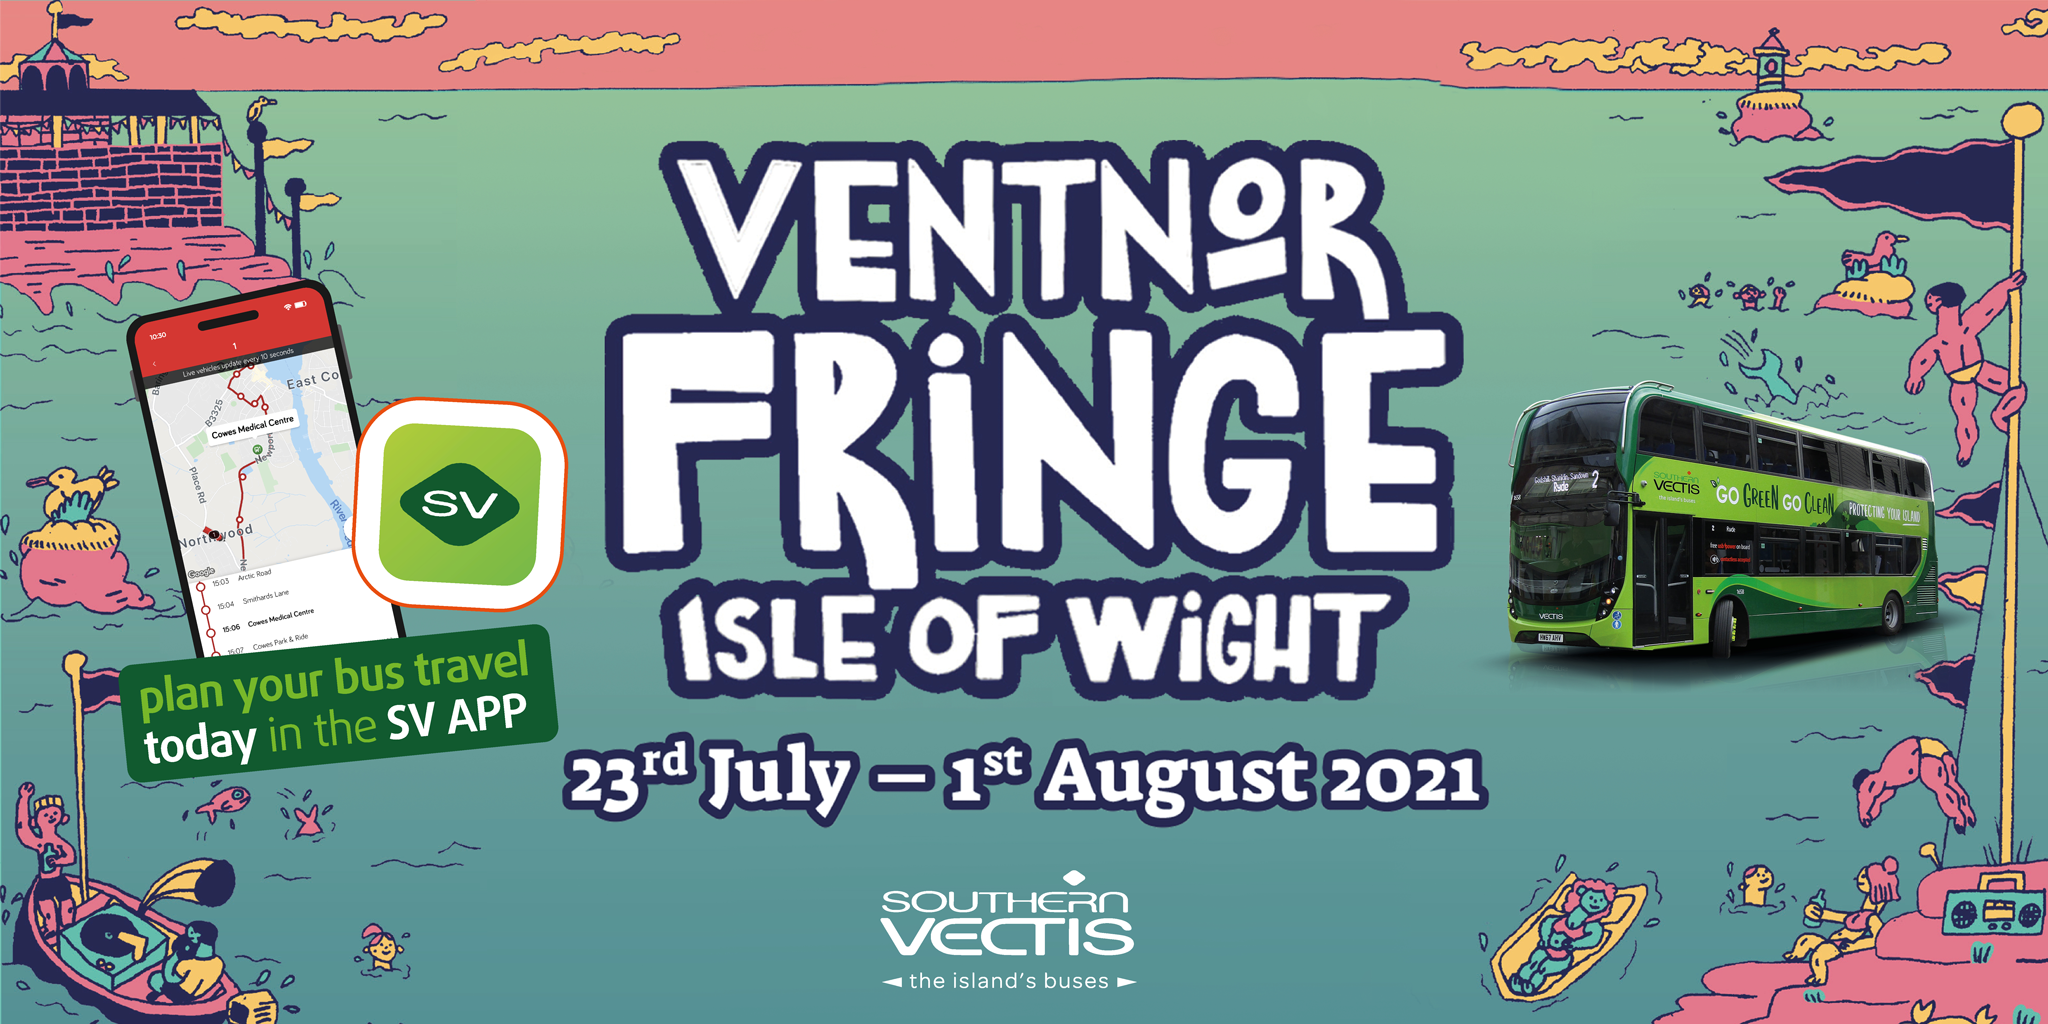 Ventnor Fringe Isle of Wight 23rd July - 1st August 2021